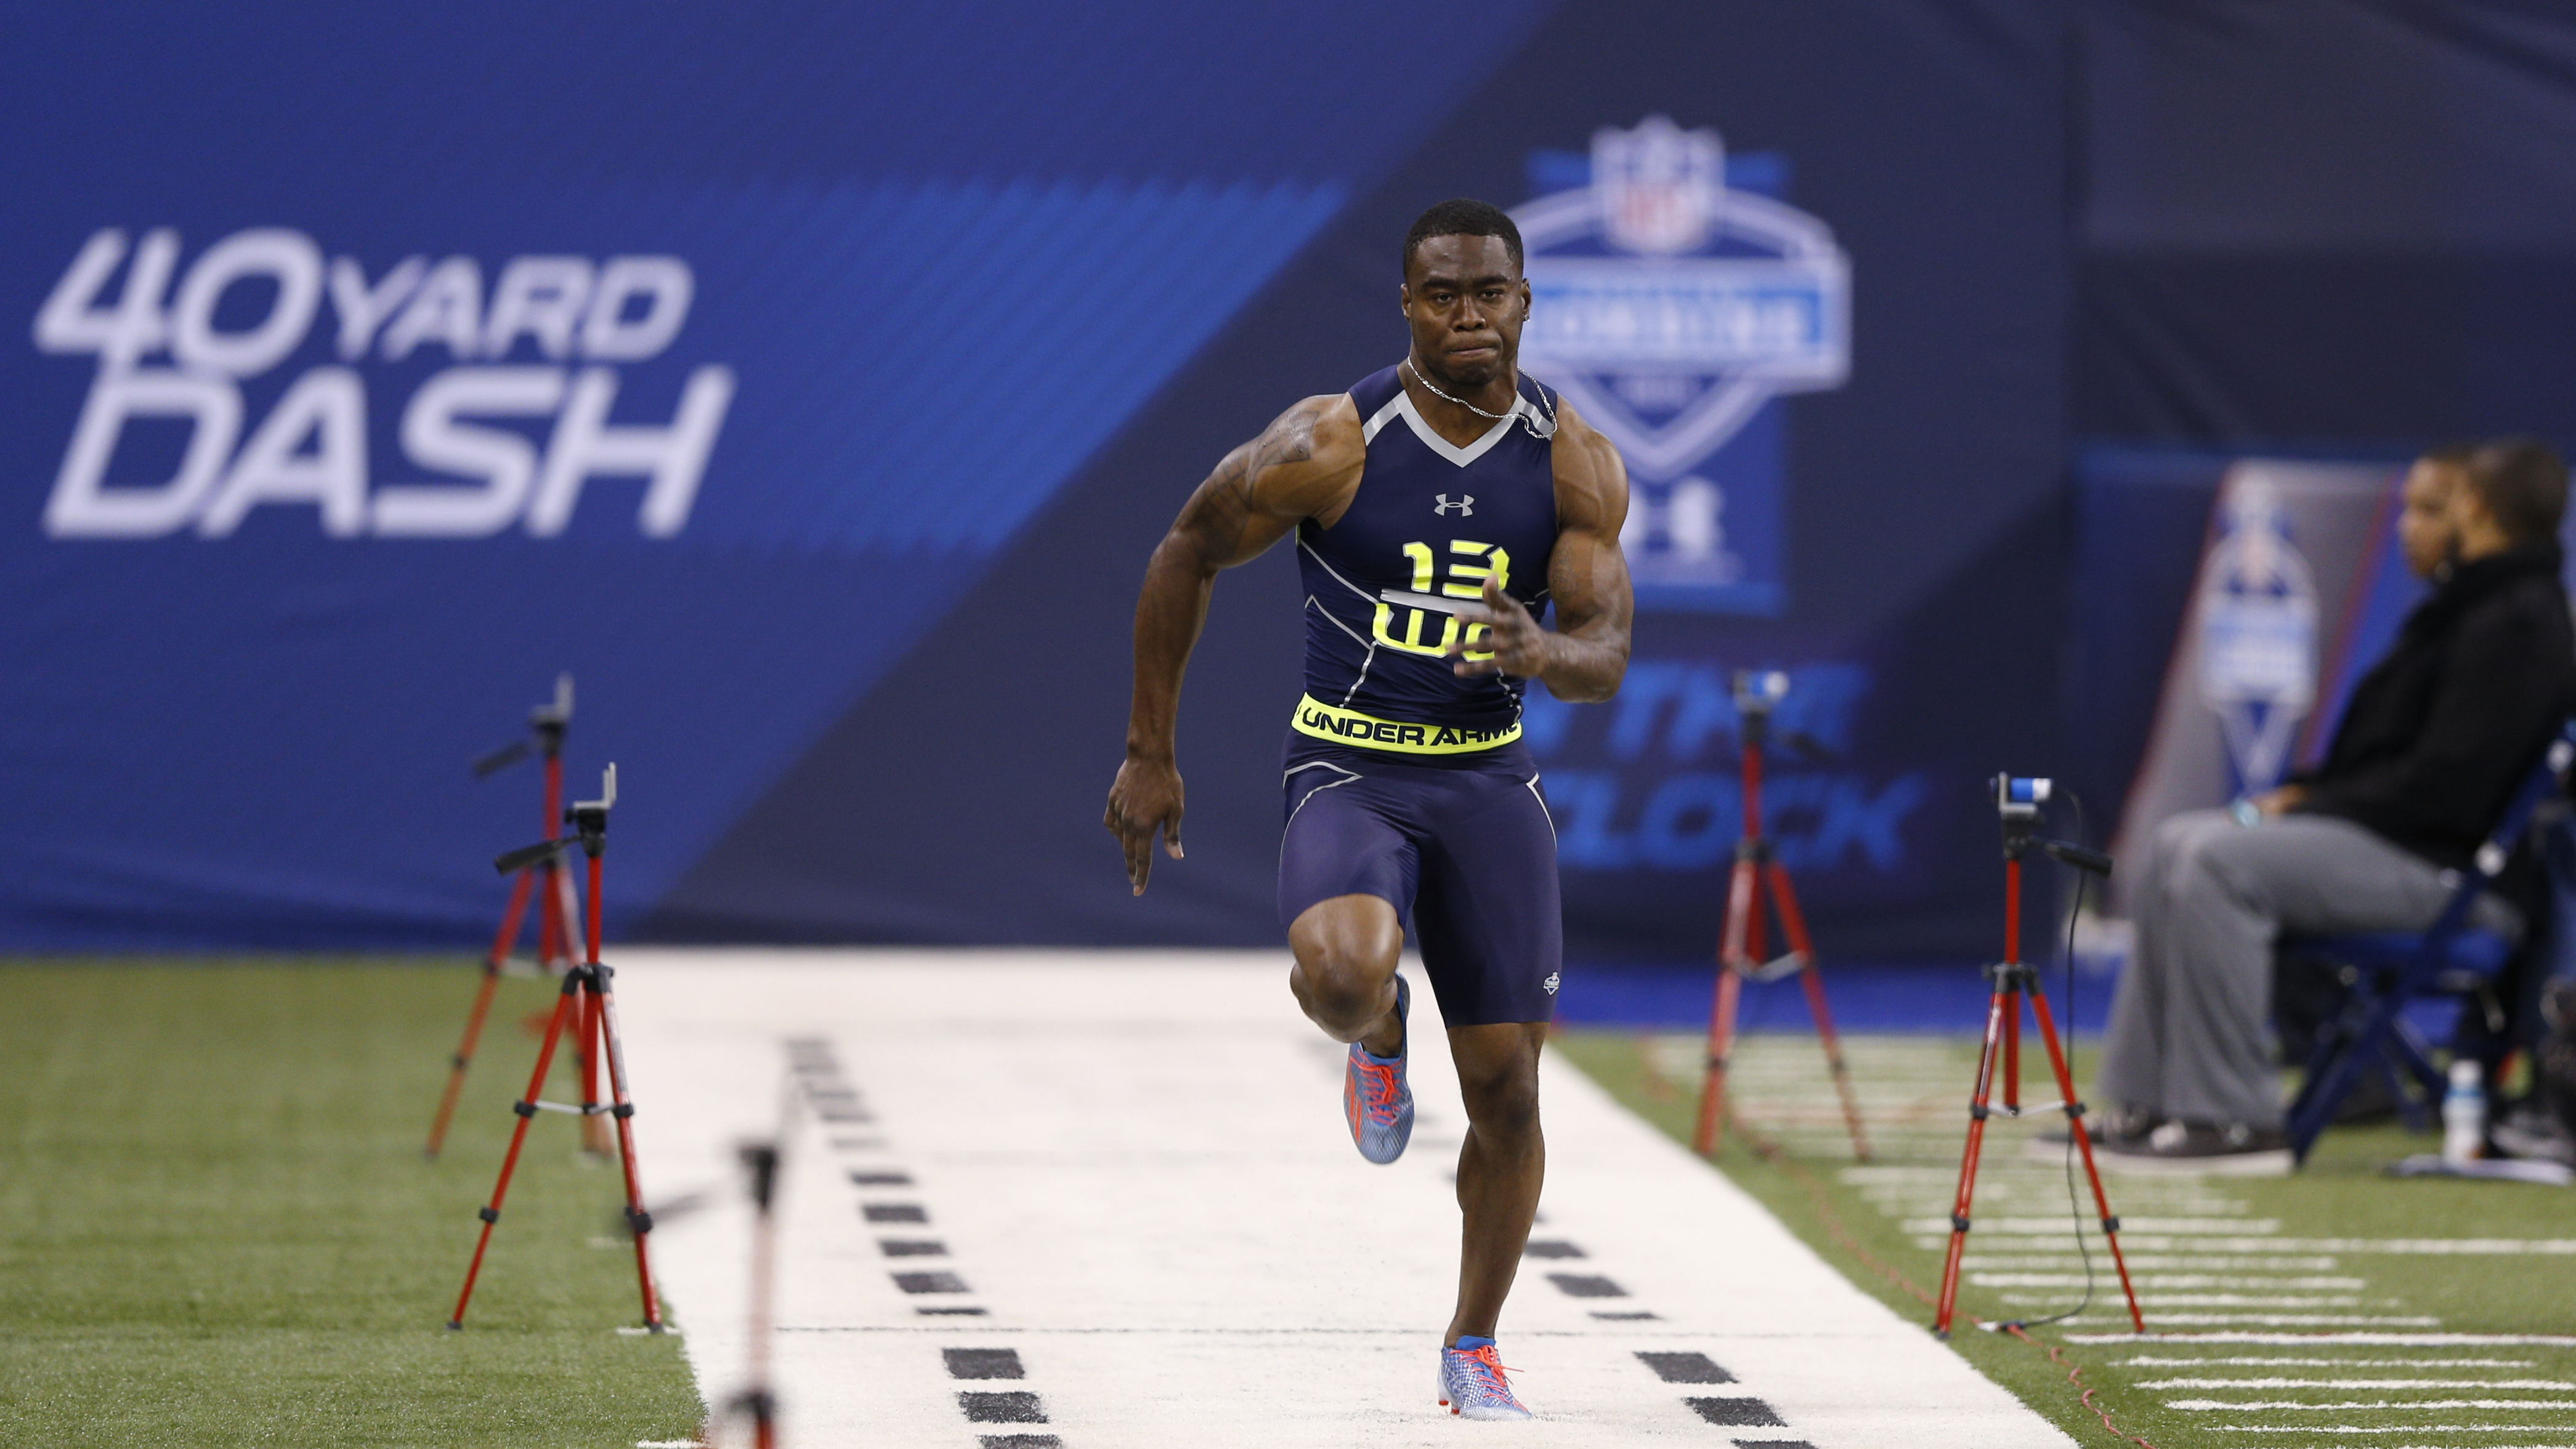 Brandin Cooks ran the fastest 40-yard dash at the 2014 combine.